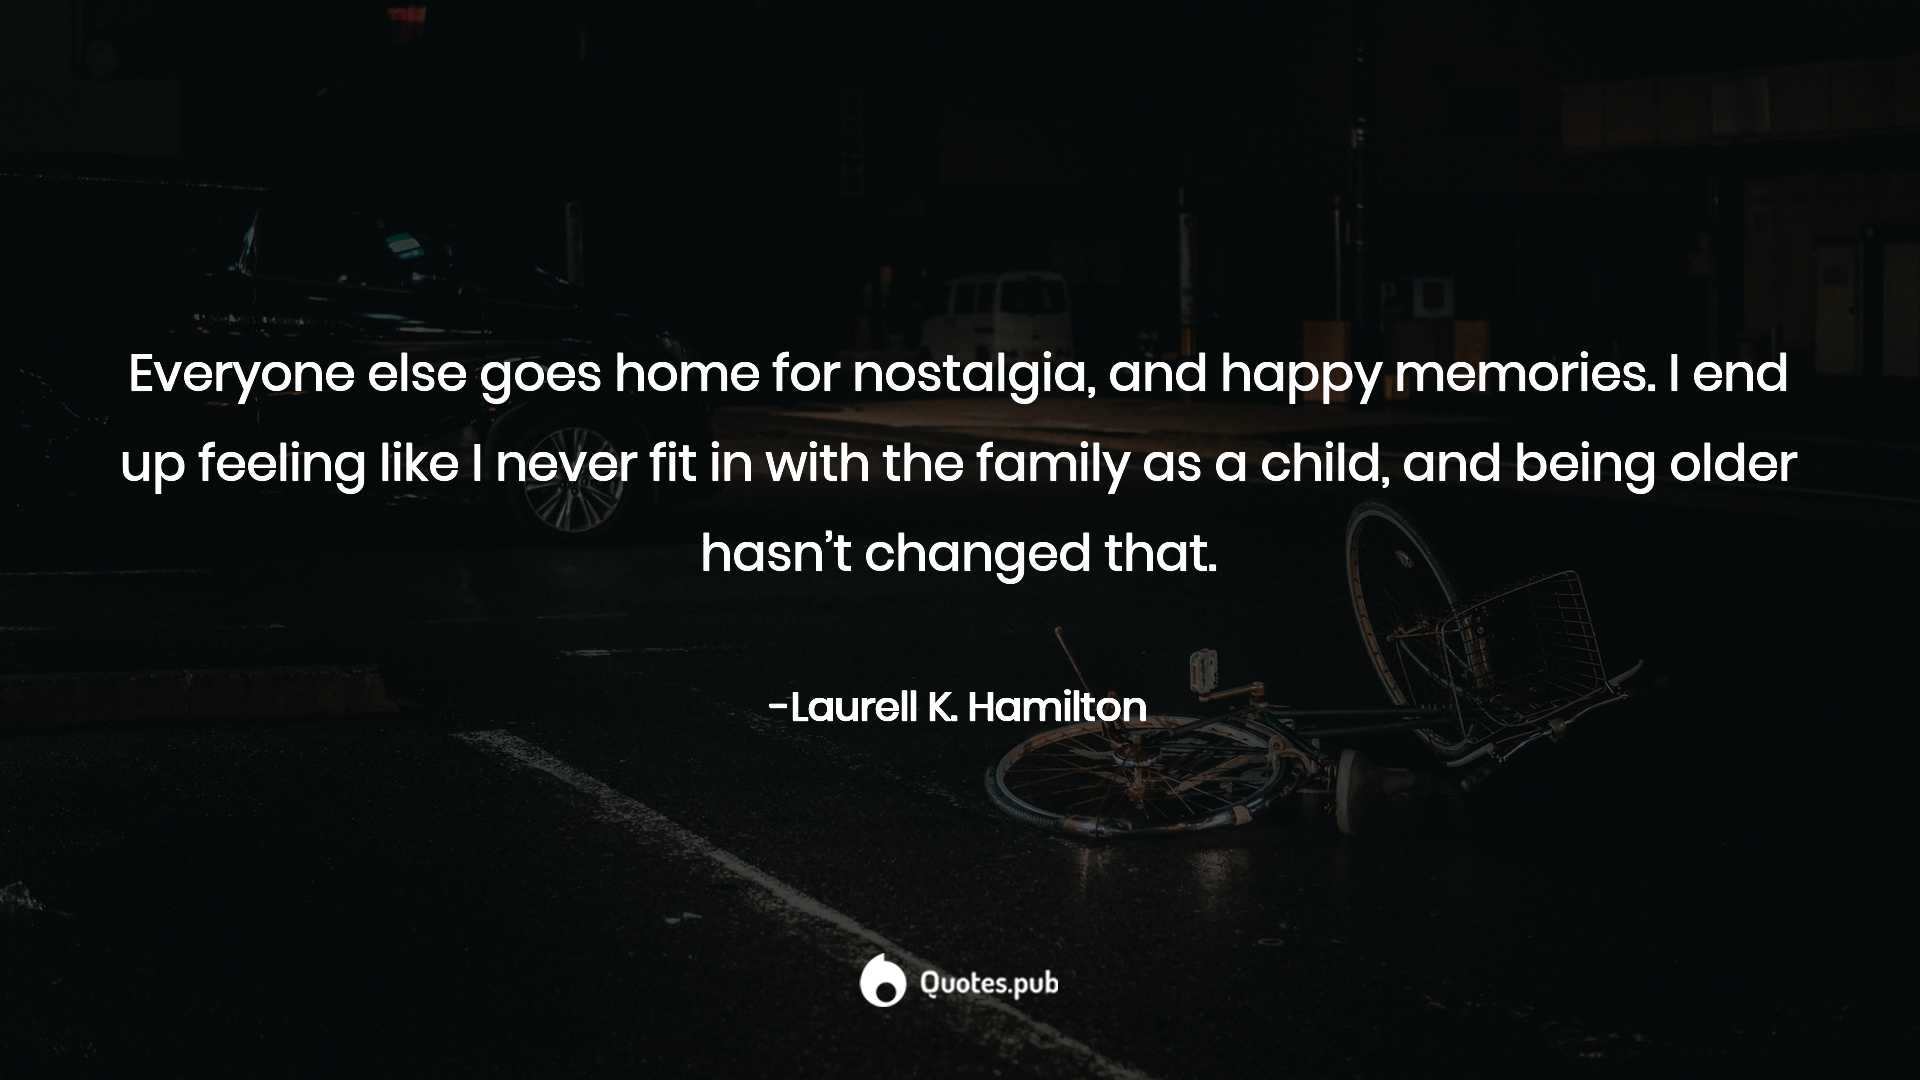 Everyone Else Goes Home For Nost Laurell K Hamilton Quotes Pub